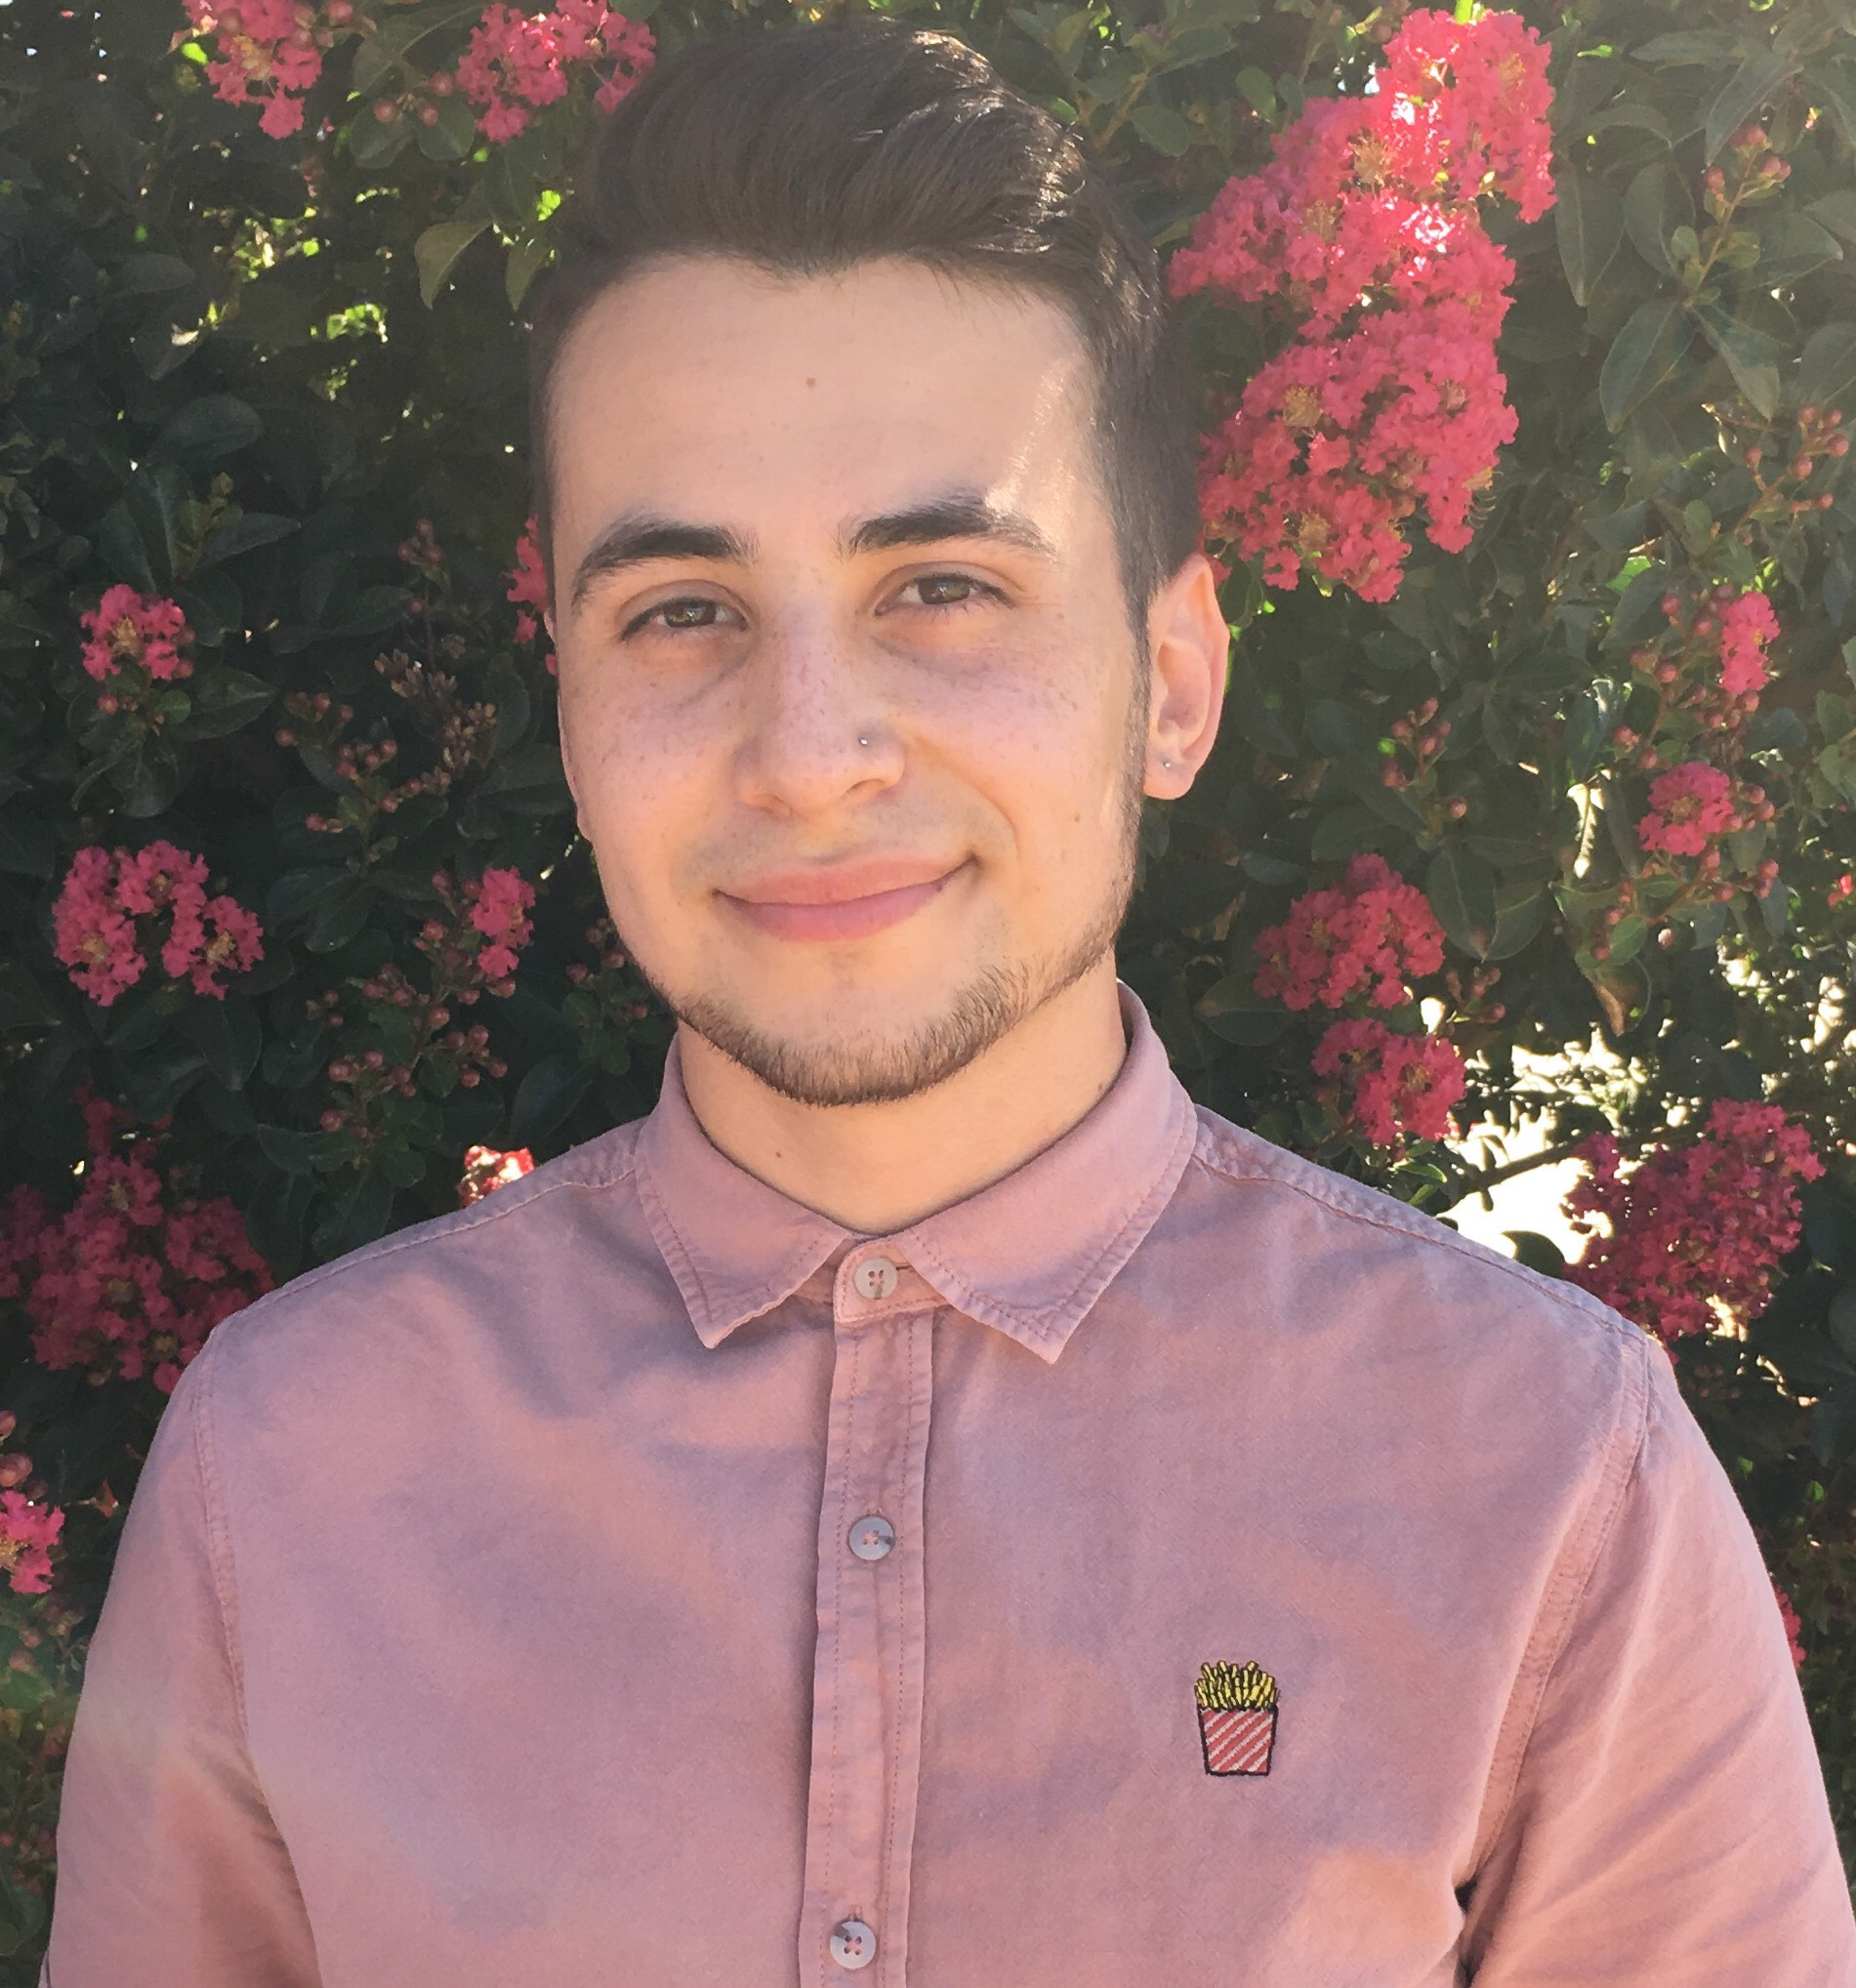 Head and shoulders photo of Angelo with a dusty rose button up top, and a small smile, with a crepe myrtle tree in the background